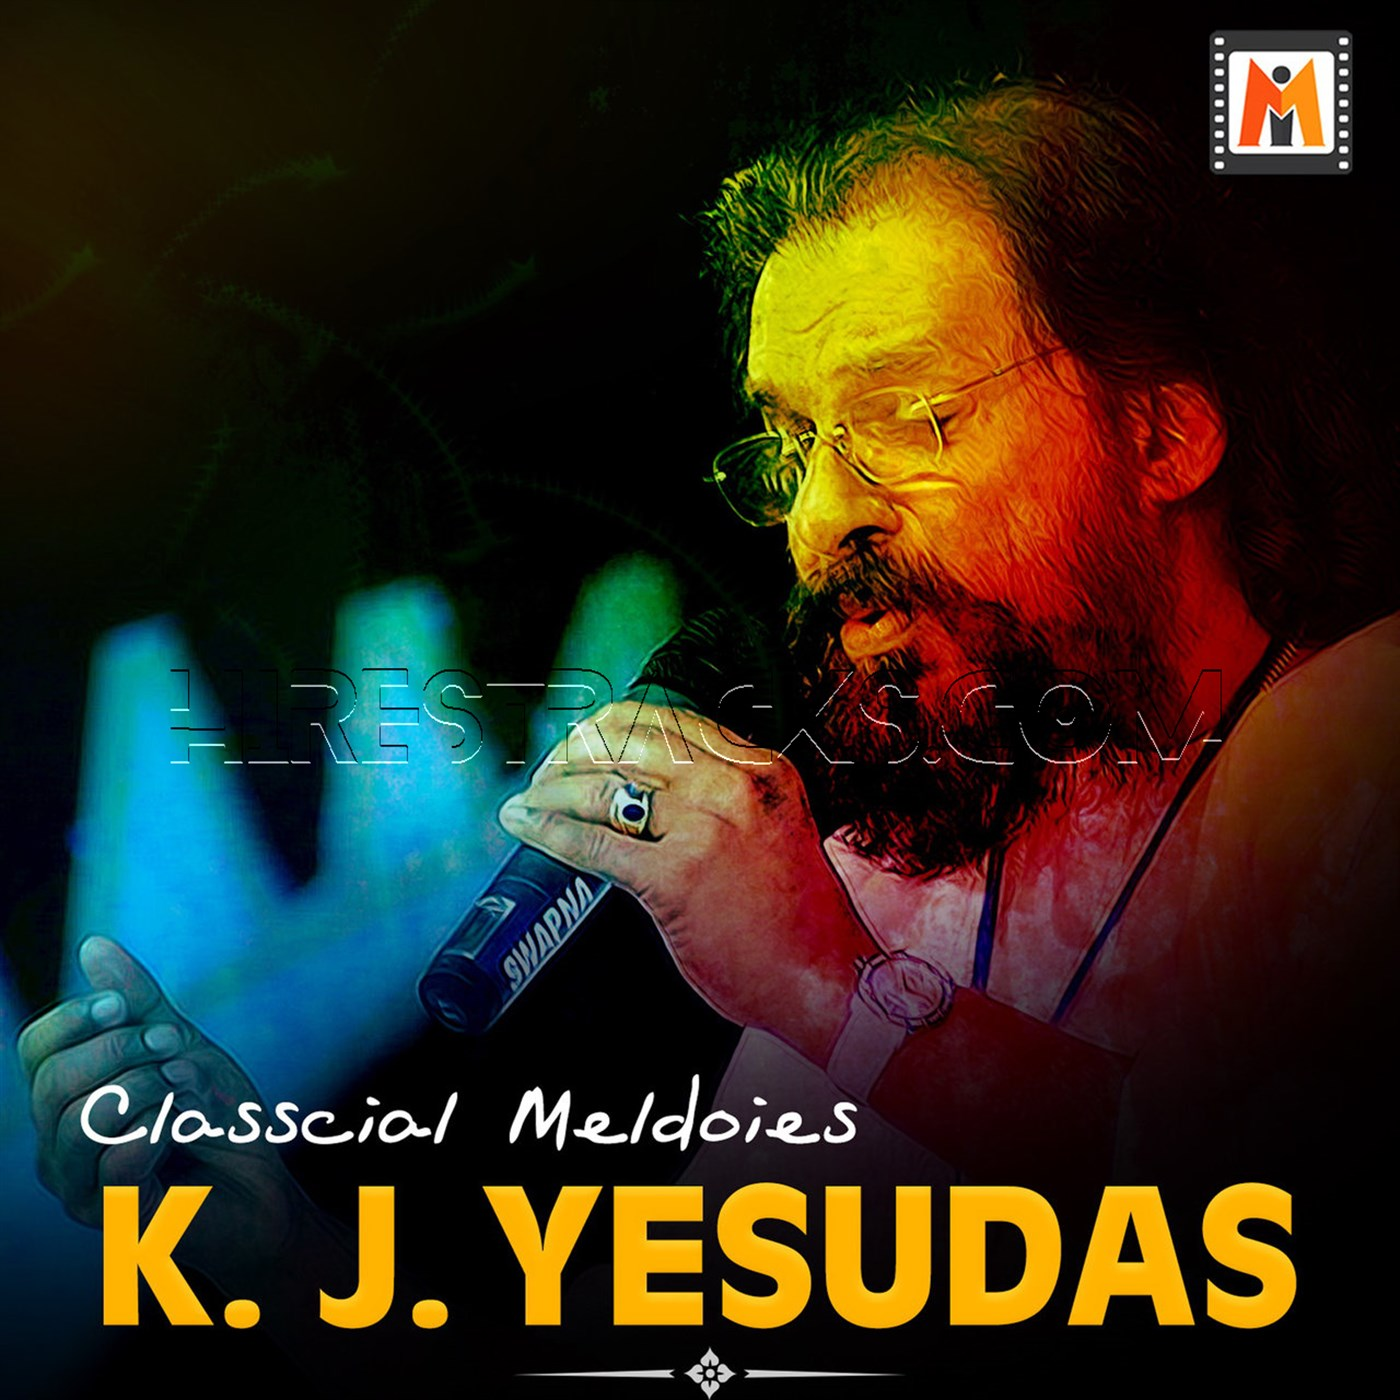 Classcial Melodies – K. J. Yesudas